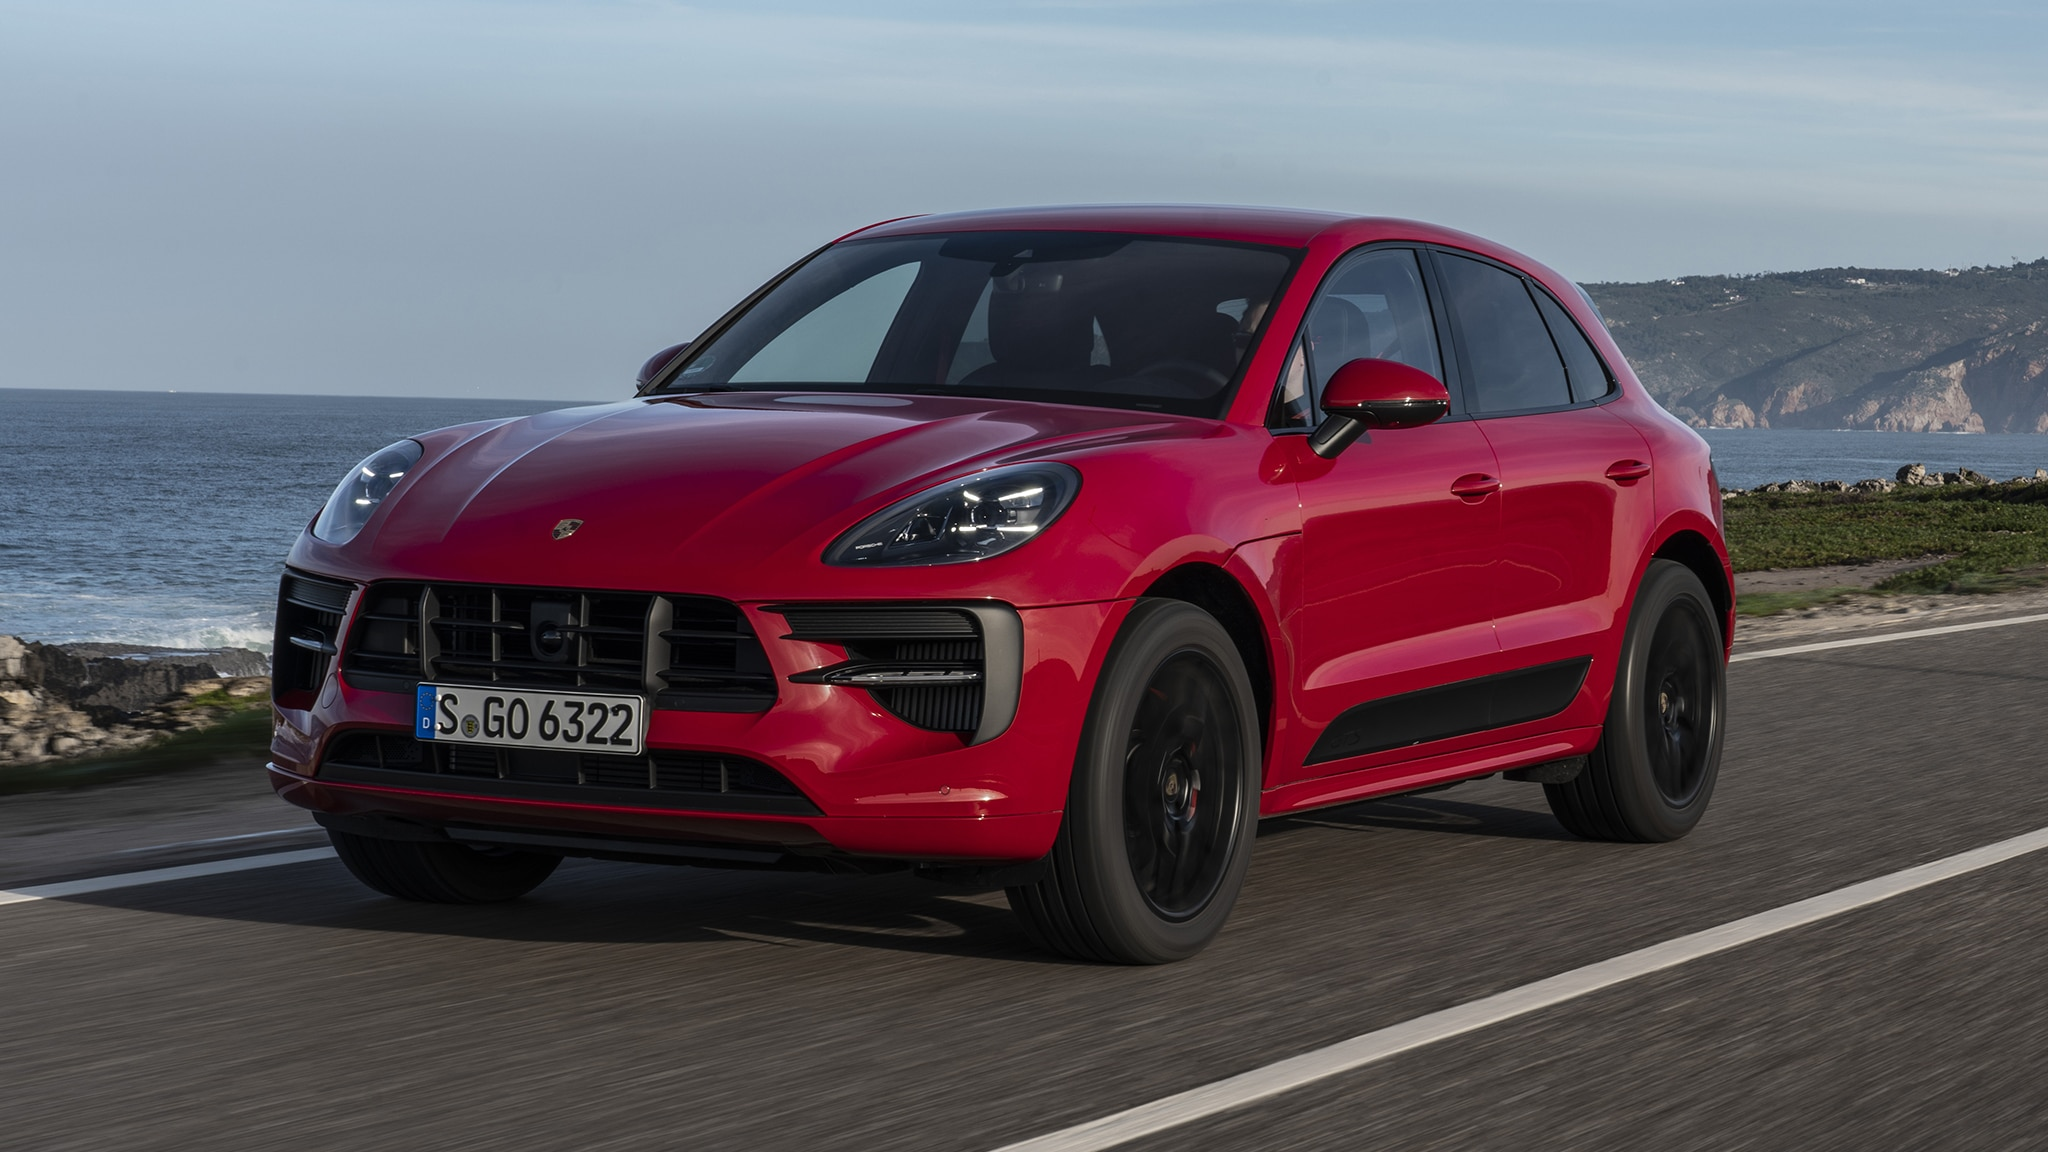 Is The 2020 Porsche Macan Gts Enthusiast Worthy